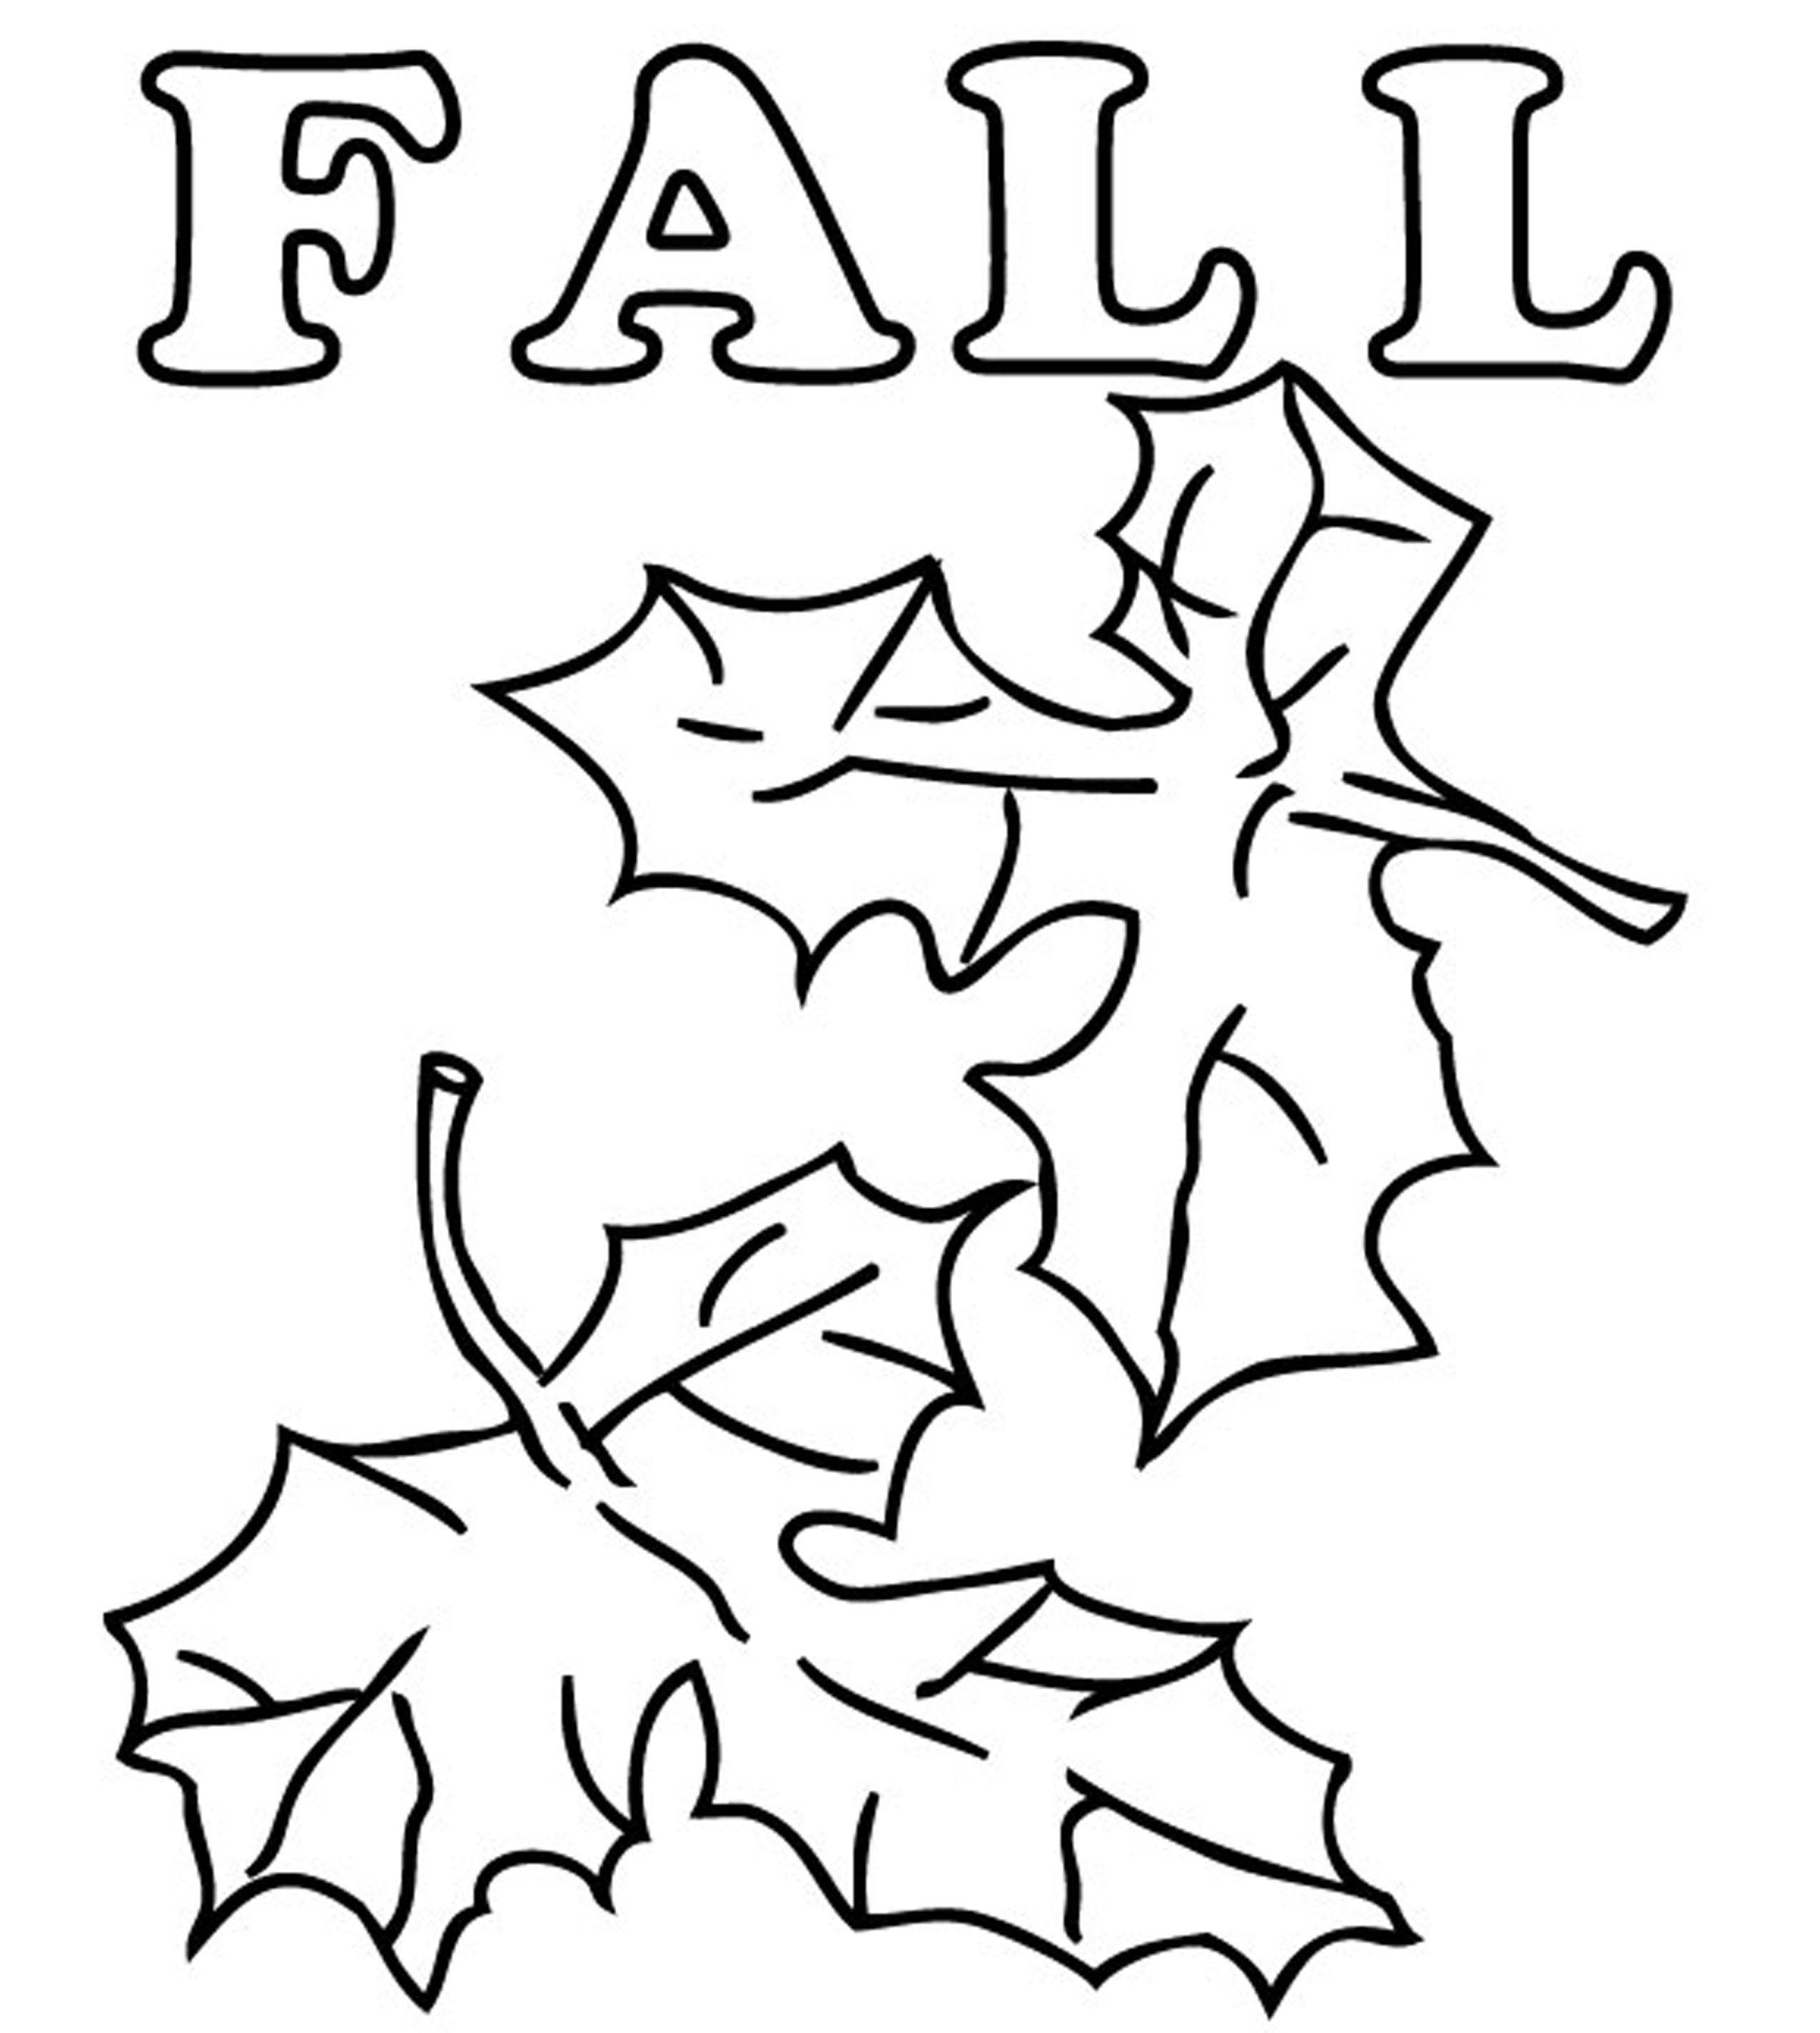 Falling Leaf Drawing at GetDrawings.com | Free for personal ...